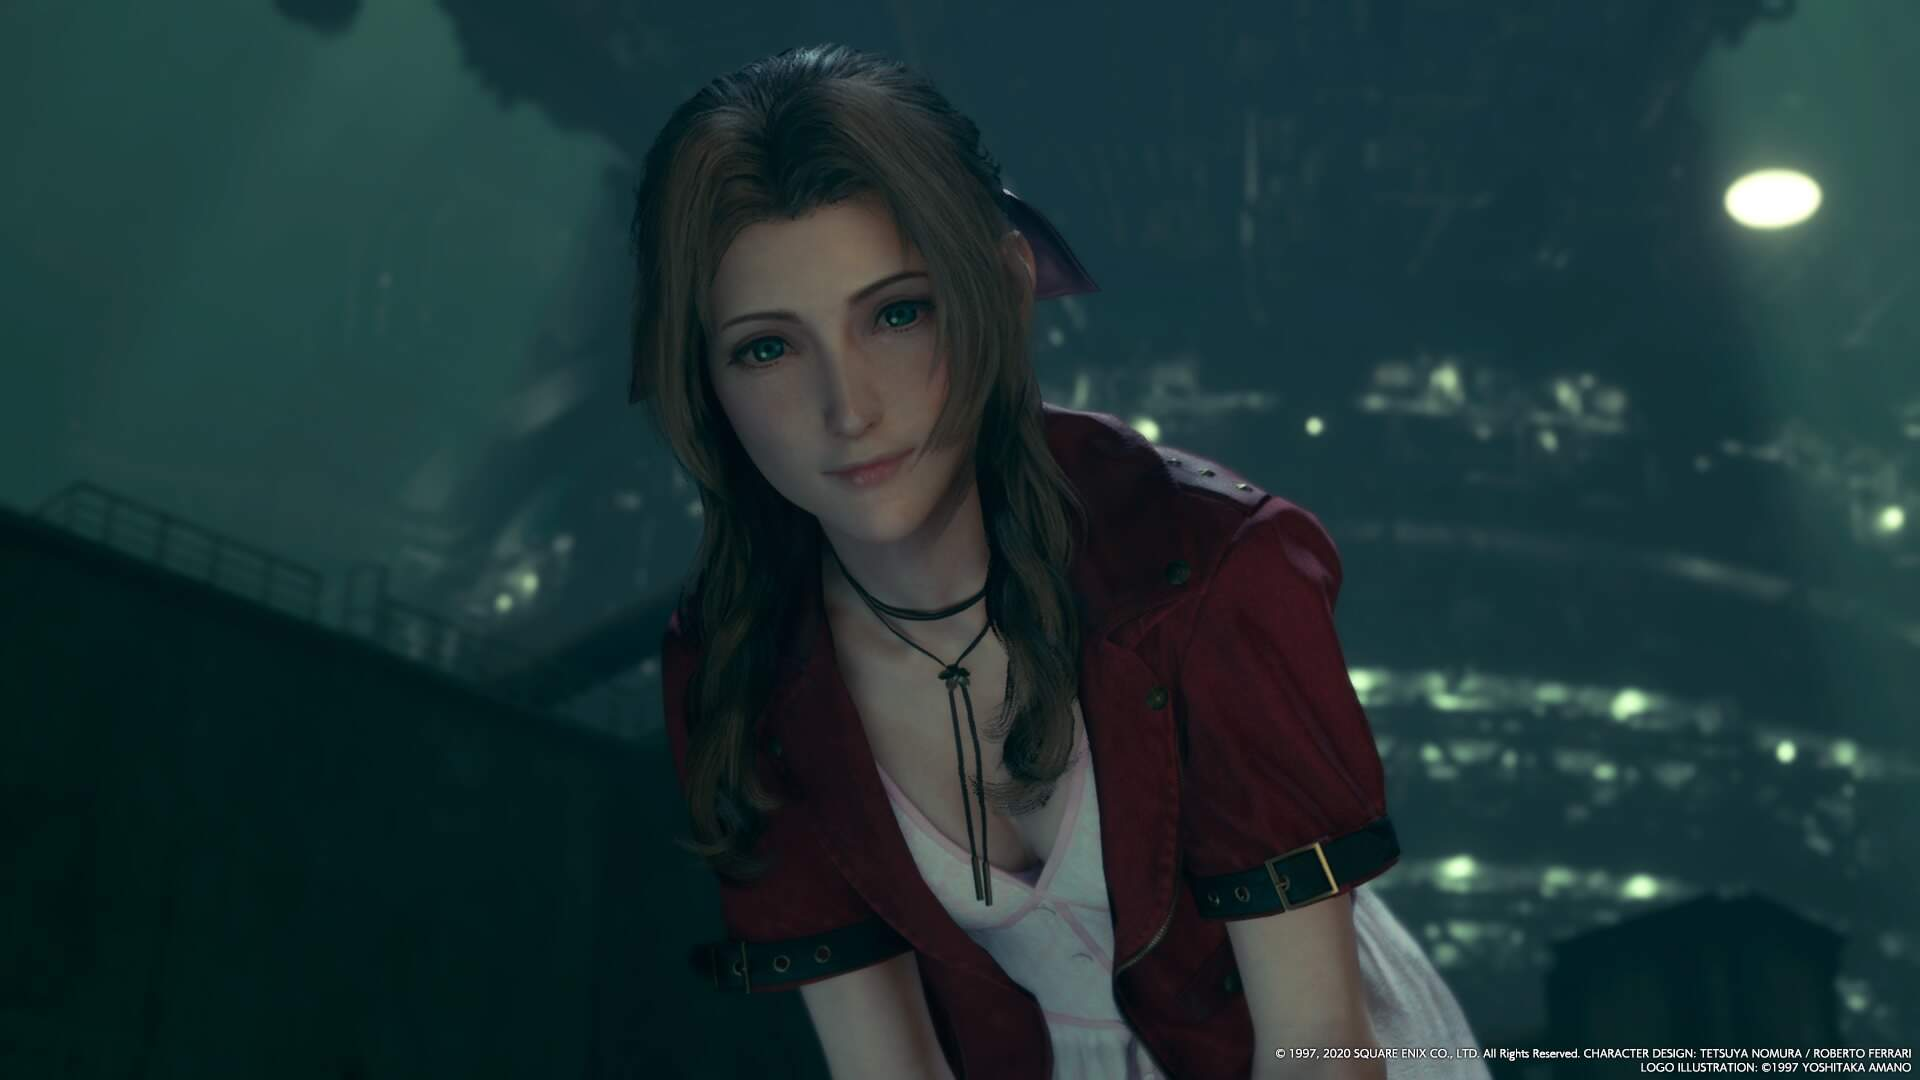 final fantasy 7 remake romance guide can you romance characters